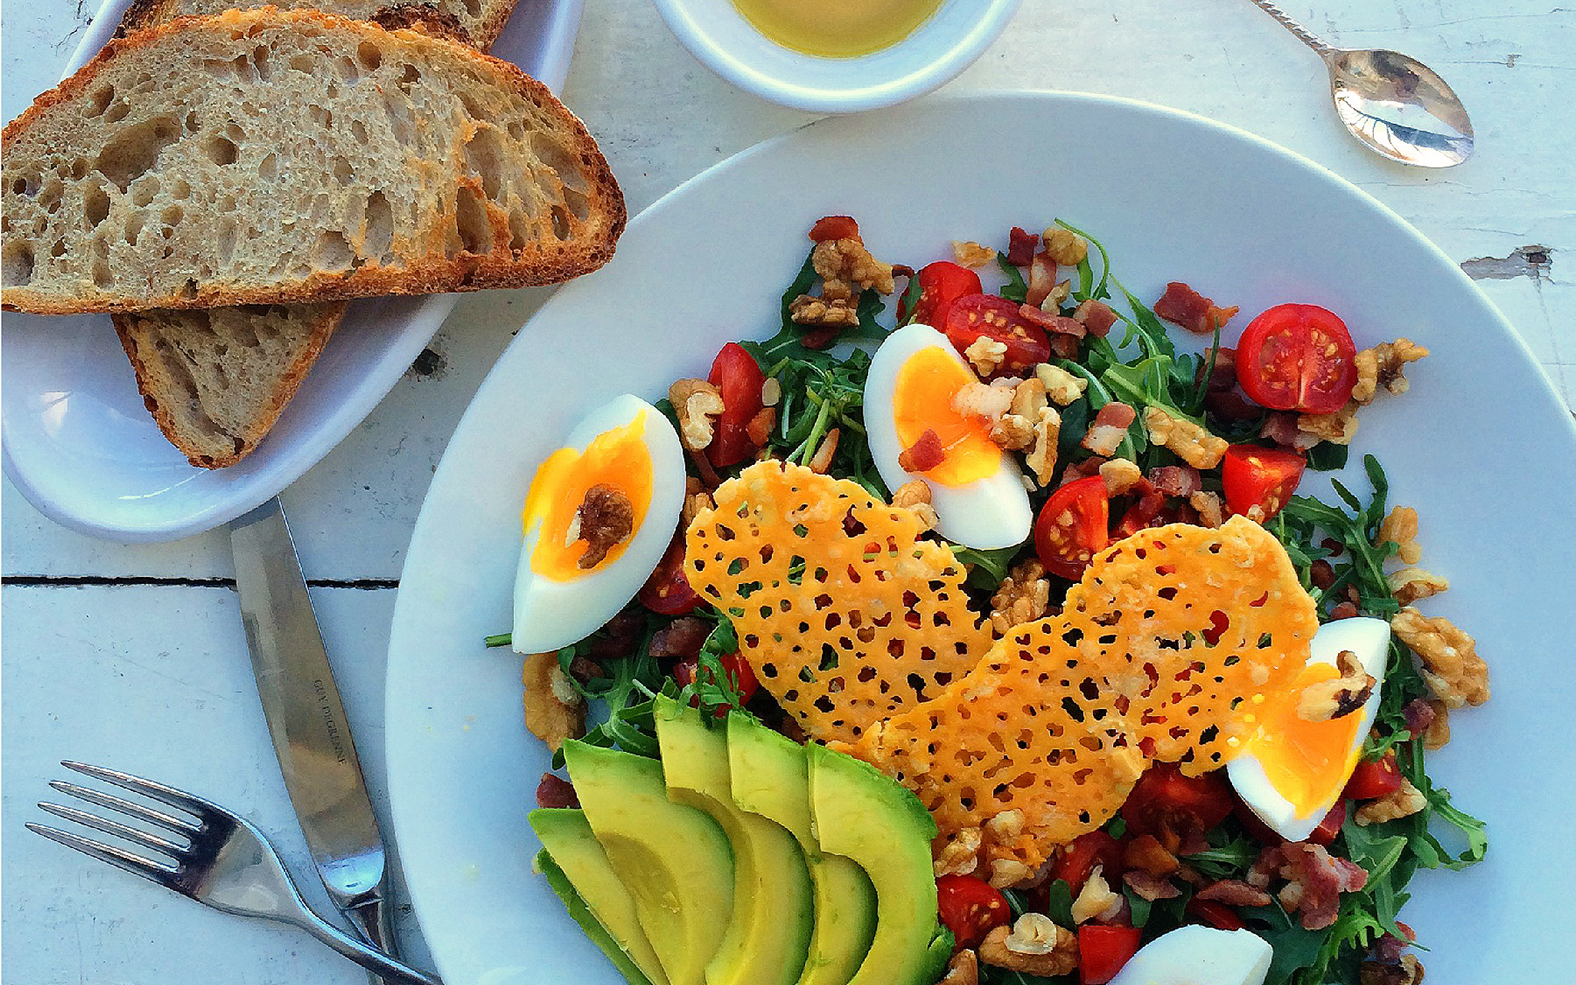 Healthy Dining Options in Amsterdam